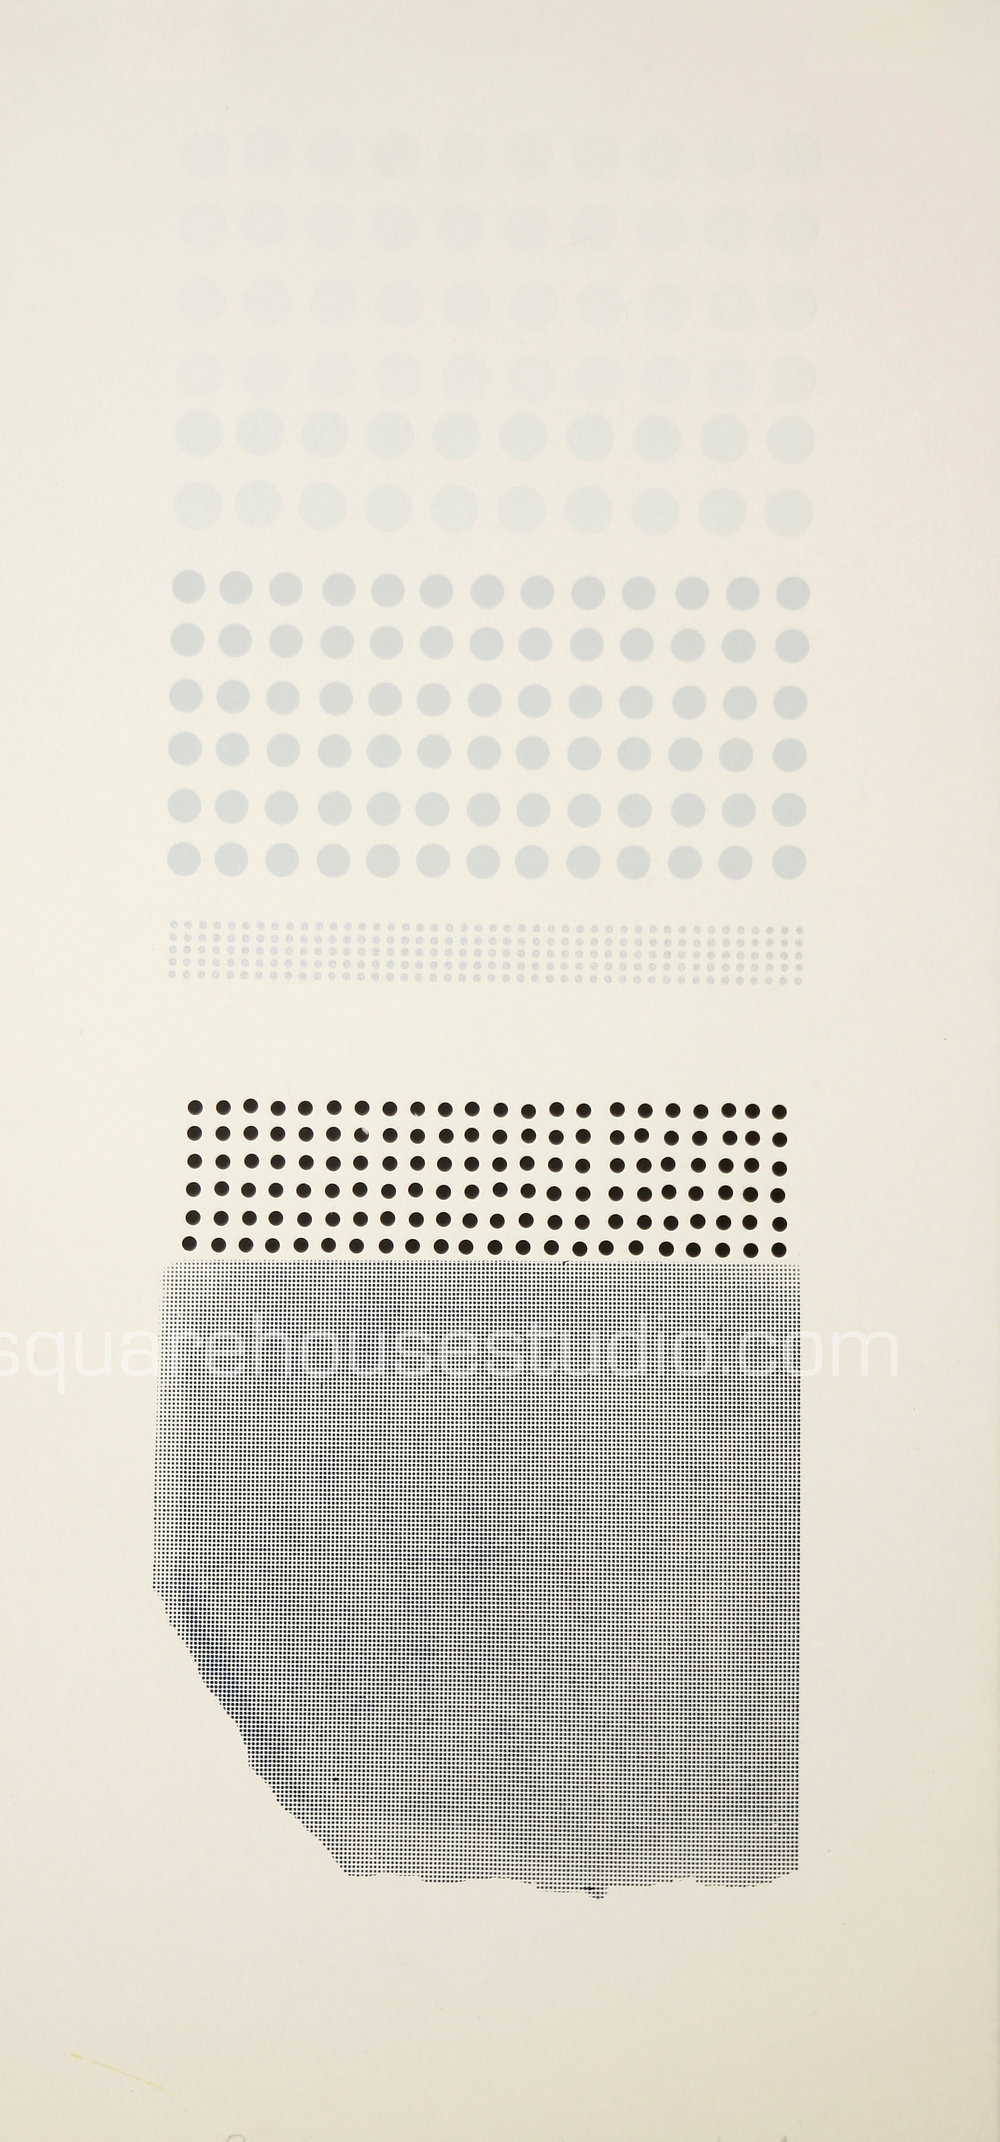 "Blue Dots , 16"" x 32,"" original edition, $625 framed / $475 unframed, Available as giclée print—$450 framed / $300 unframed"